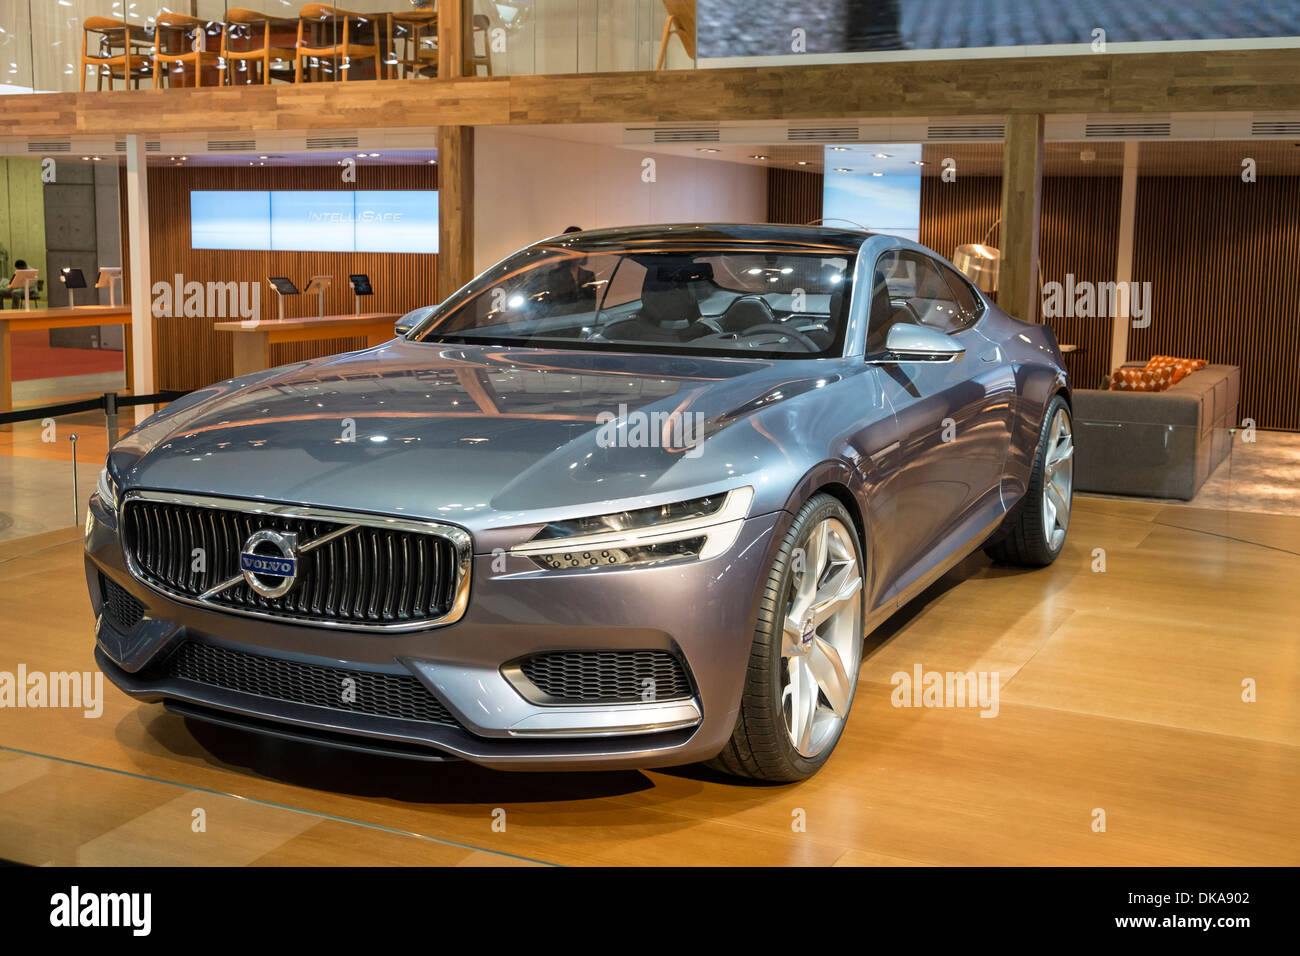 Volvo Concept Coupe plug-in hybrid at Tokyo Motor Show 2013 in Japan - Stock Image